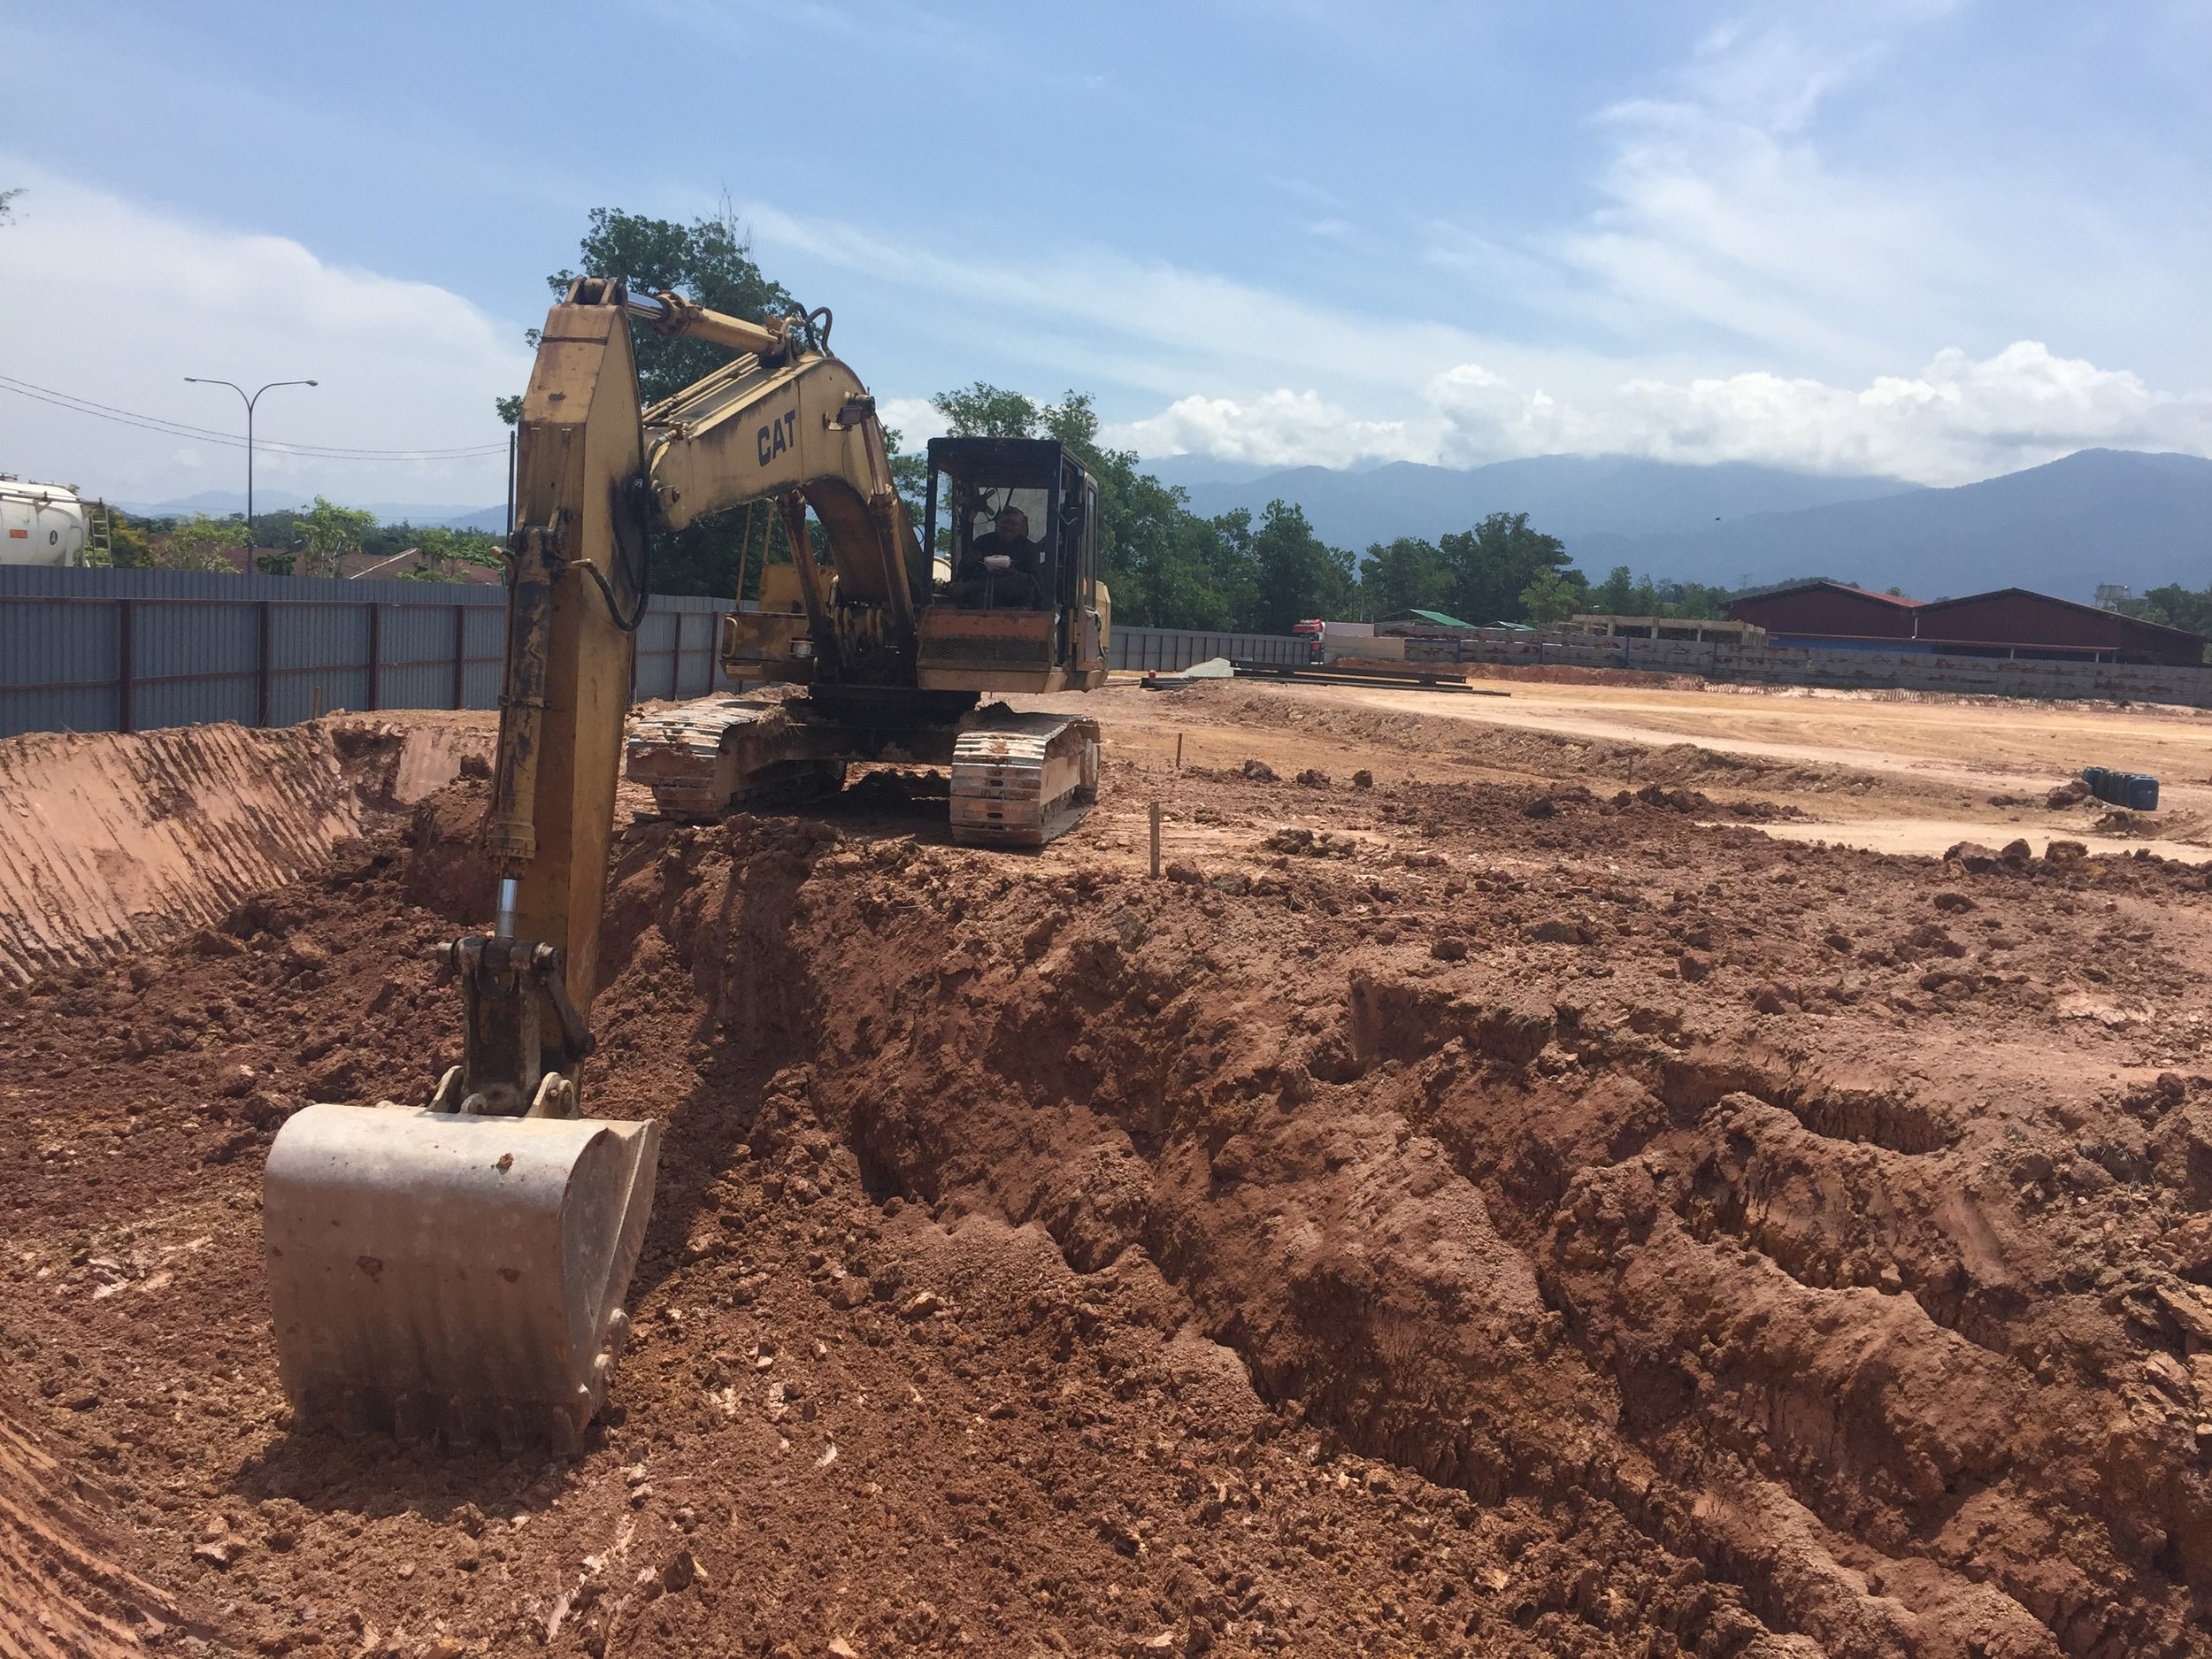 2019 May 10 - Perak Factory and Restaurant - Our Perak Factory and Restaurant breaks ground in Malaysia.